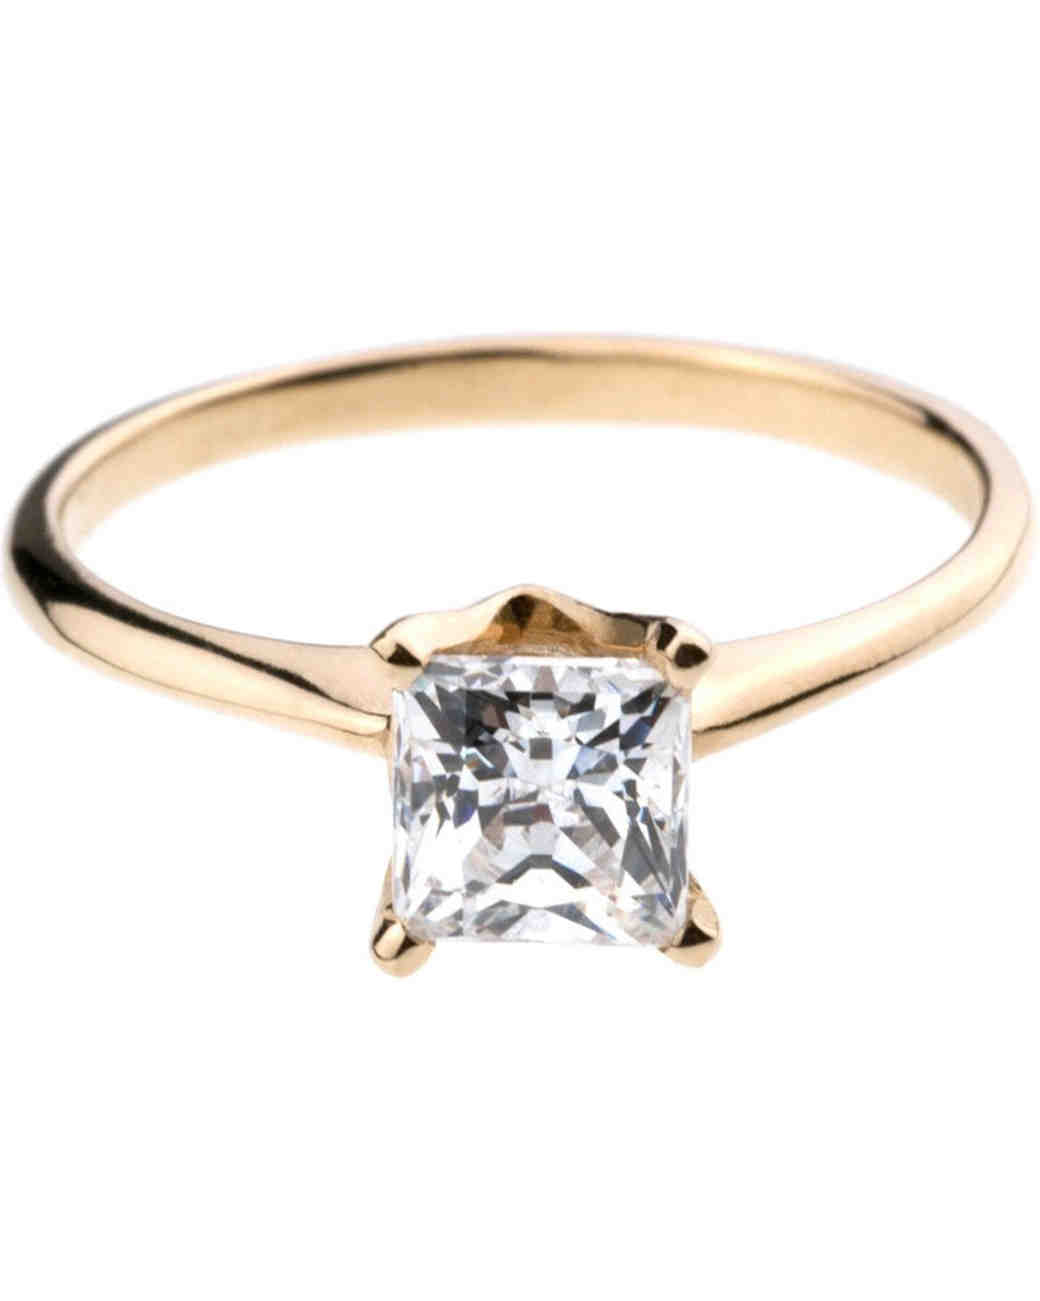 rings white diamond with round in square engagement halo gold cut ring